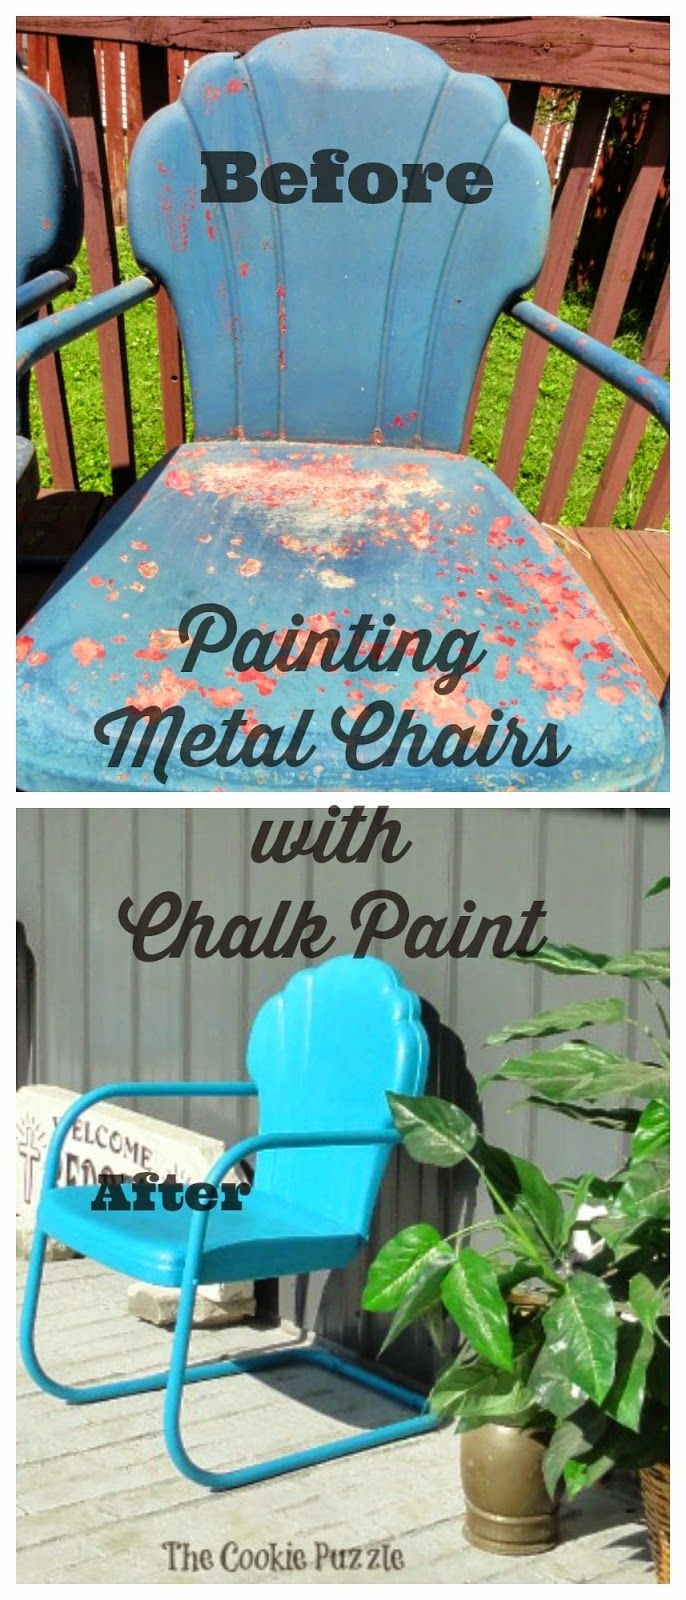 Butterfly metal chair - Painting Metal Chairs With Chalk Paint Via The Cookie Puzzle